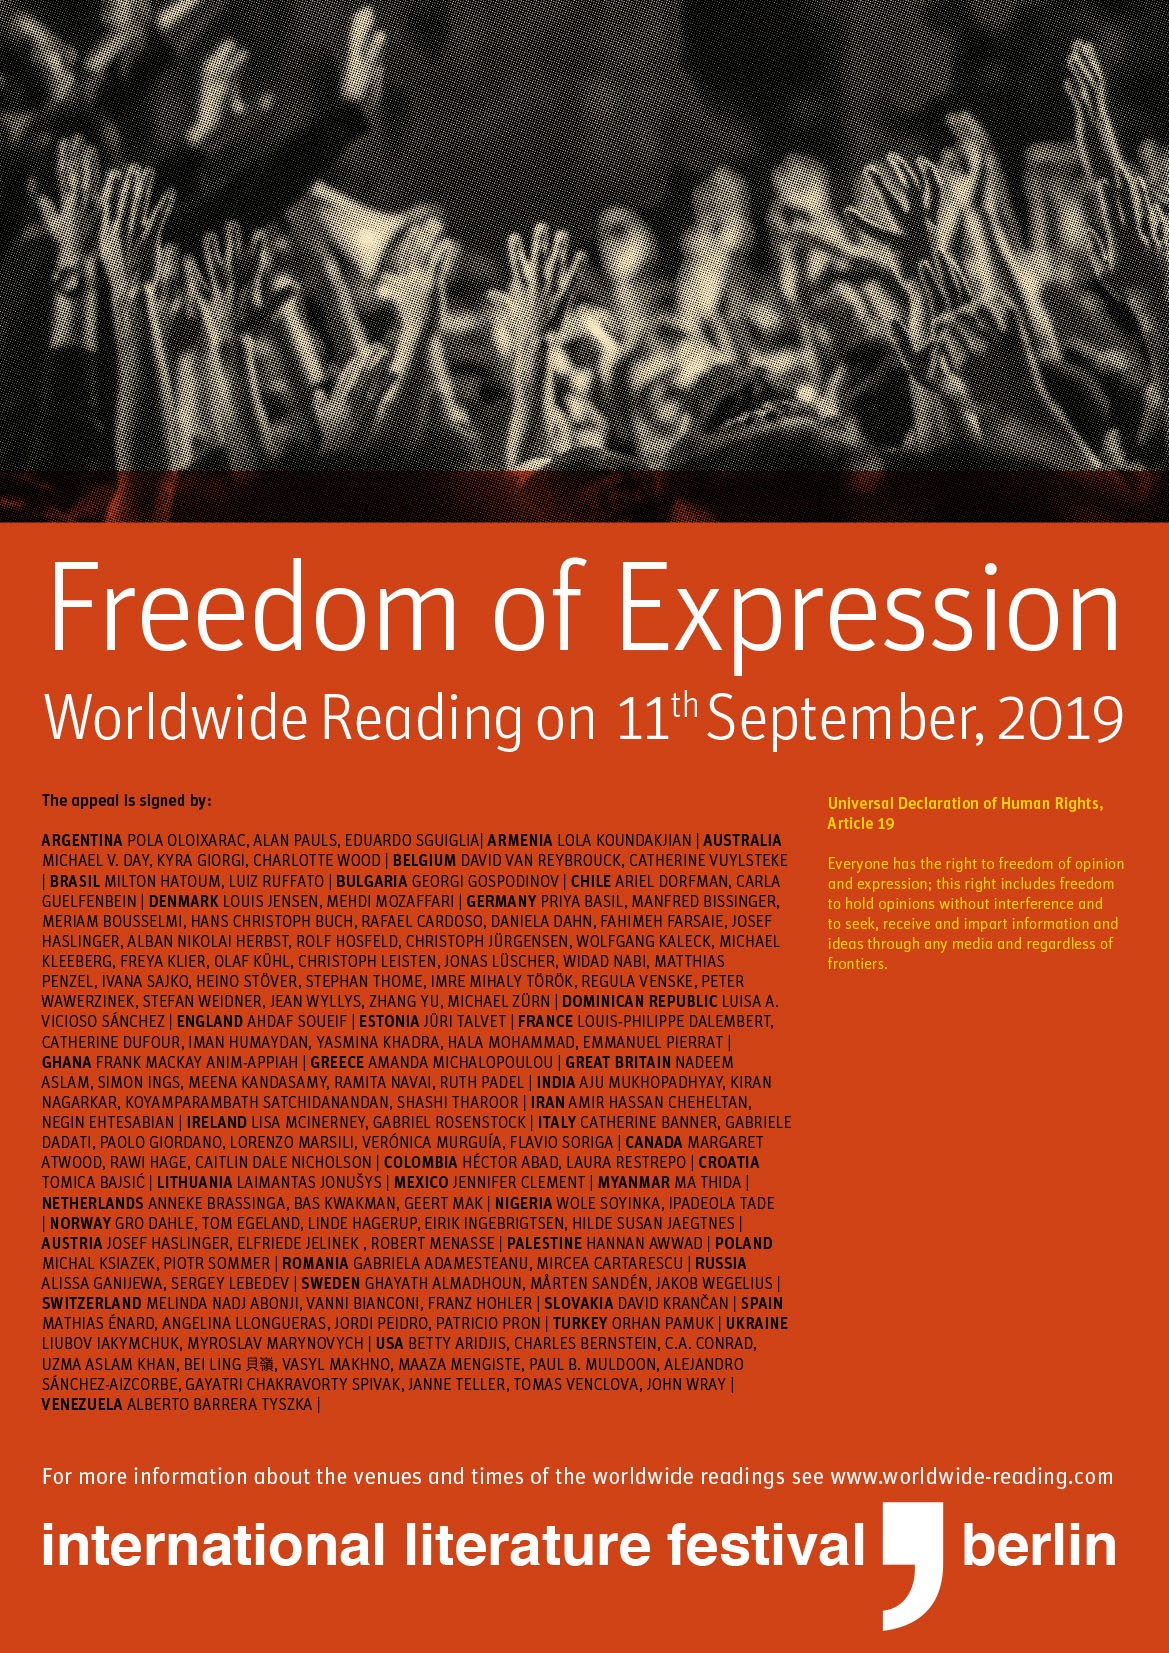 11.09.2019 - Worlwide Reading for Freedom of Expression